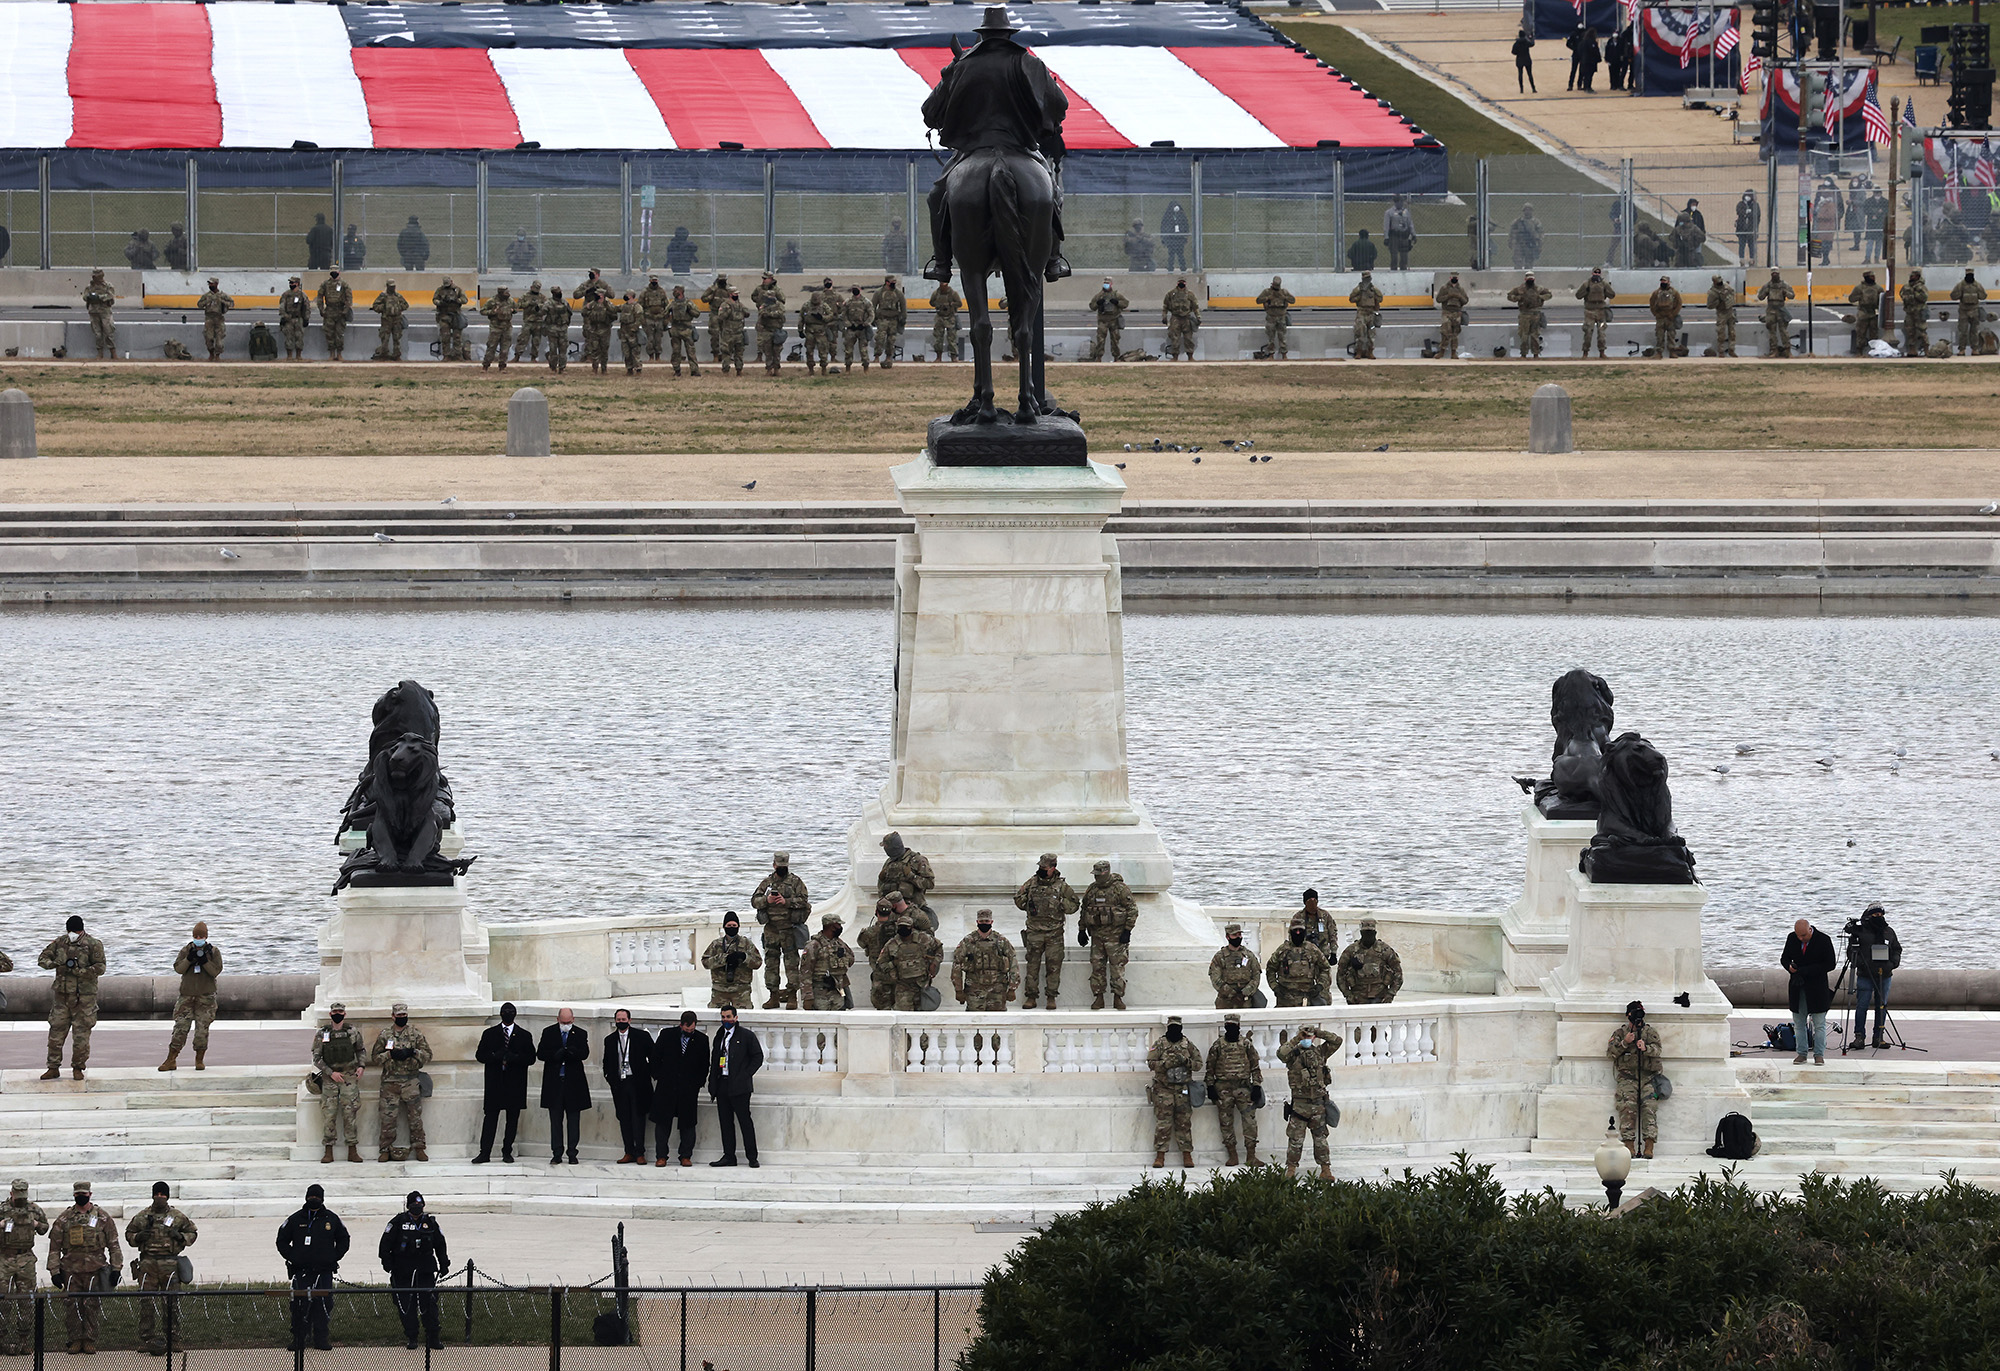 National Guard troops look on during the inauguration of President-elect Joe Biden on the West Front of the Capitol on Jan. 20, 2021, in Washington. (Tasos Katopodis/Getty Images)